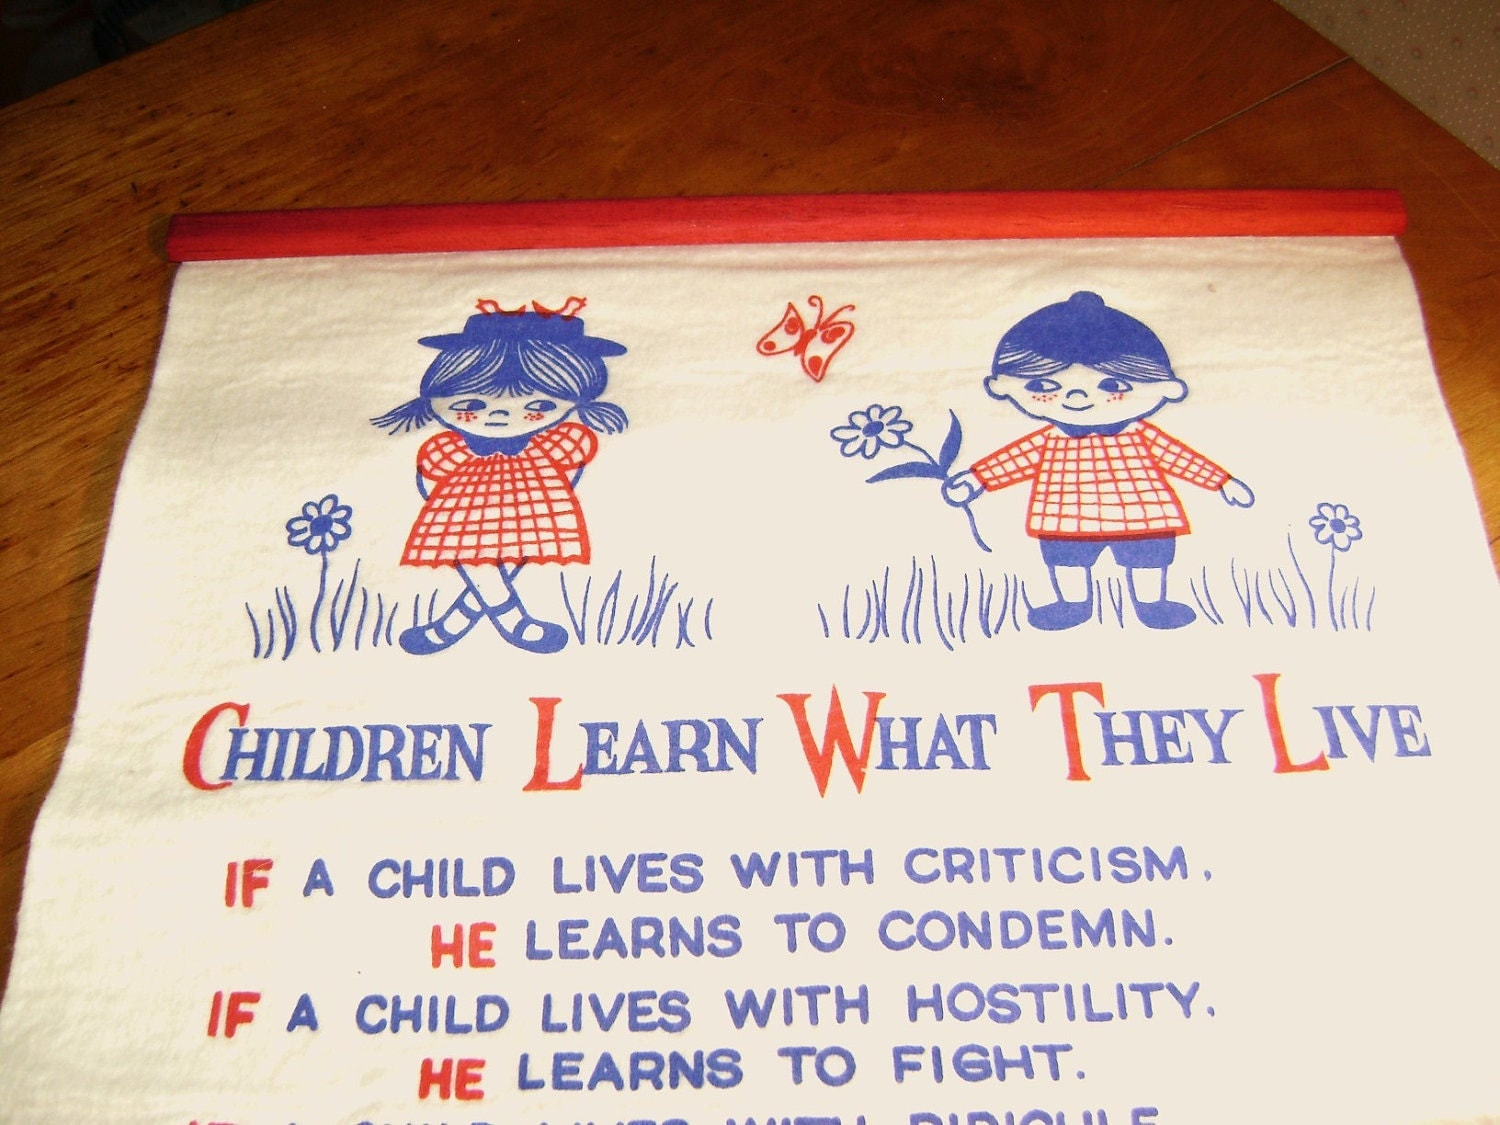 Children Learn What They Live Posters | Fine Art America